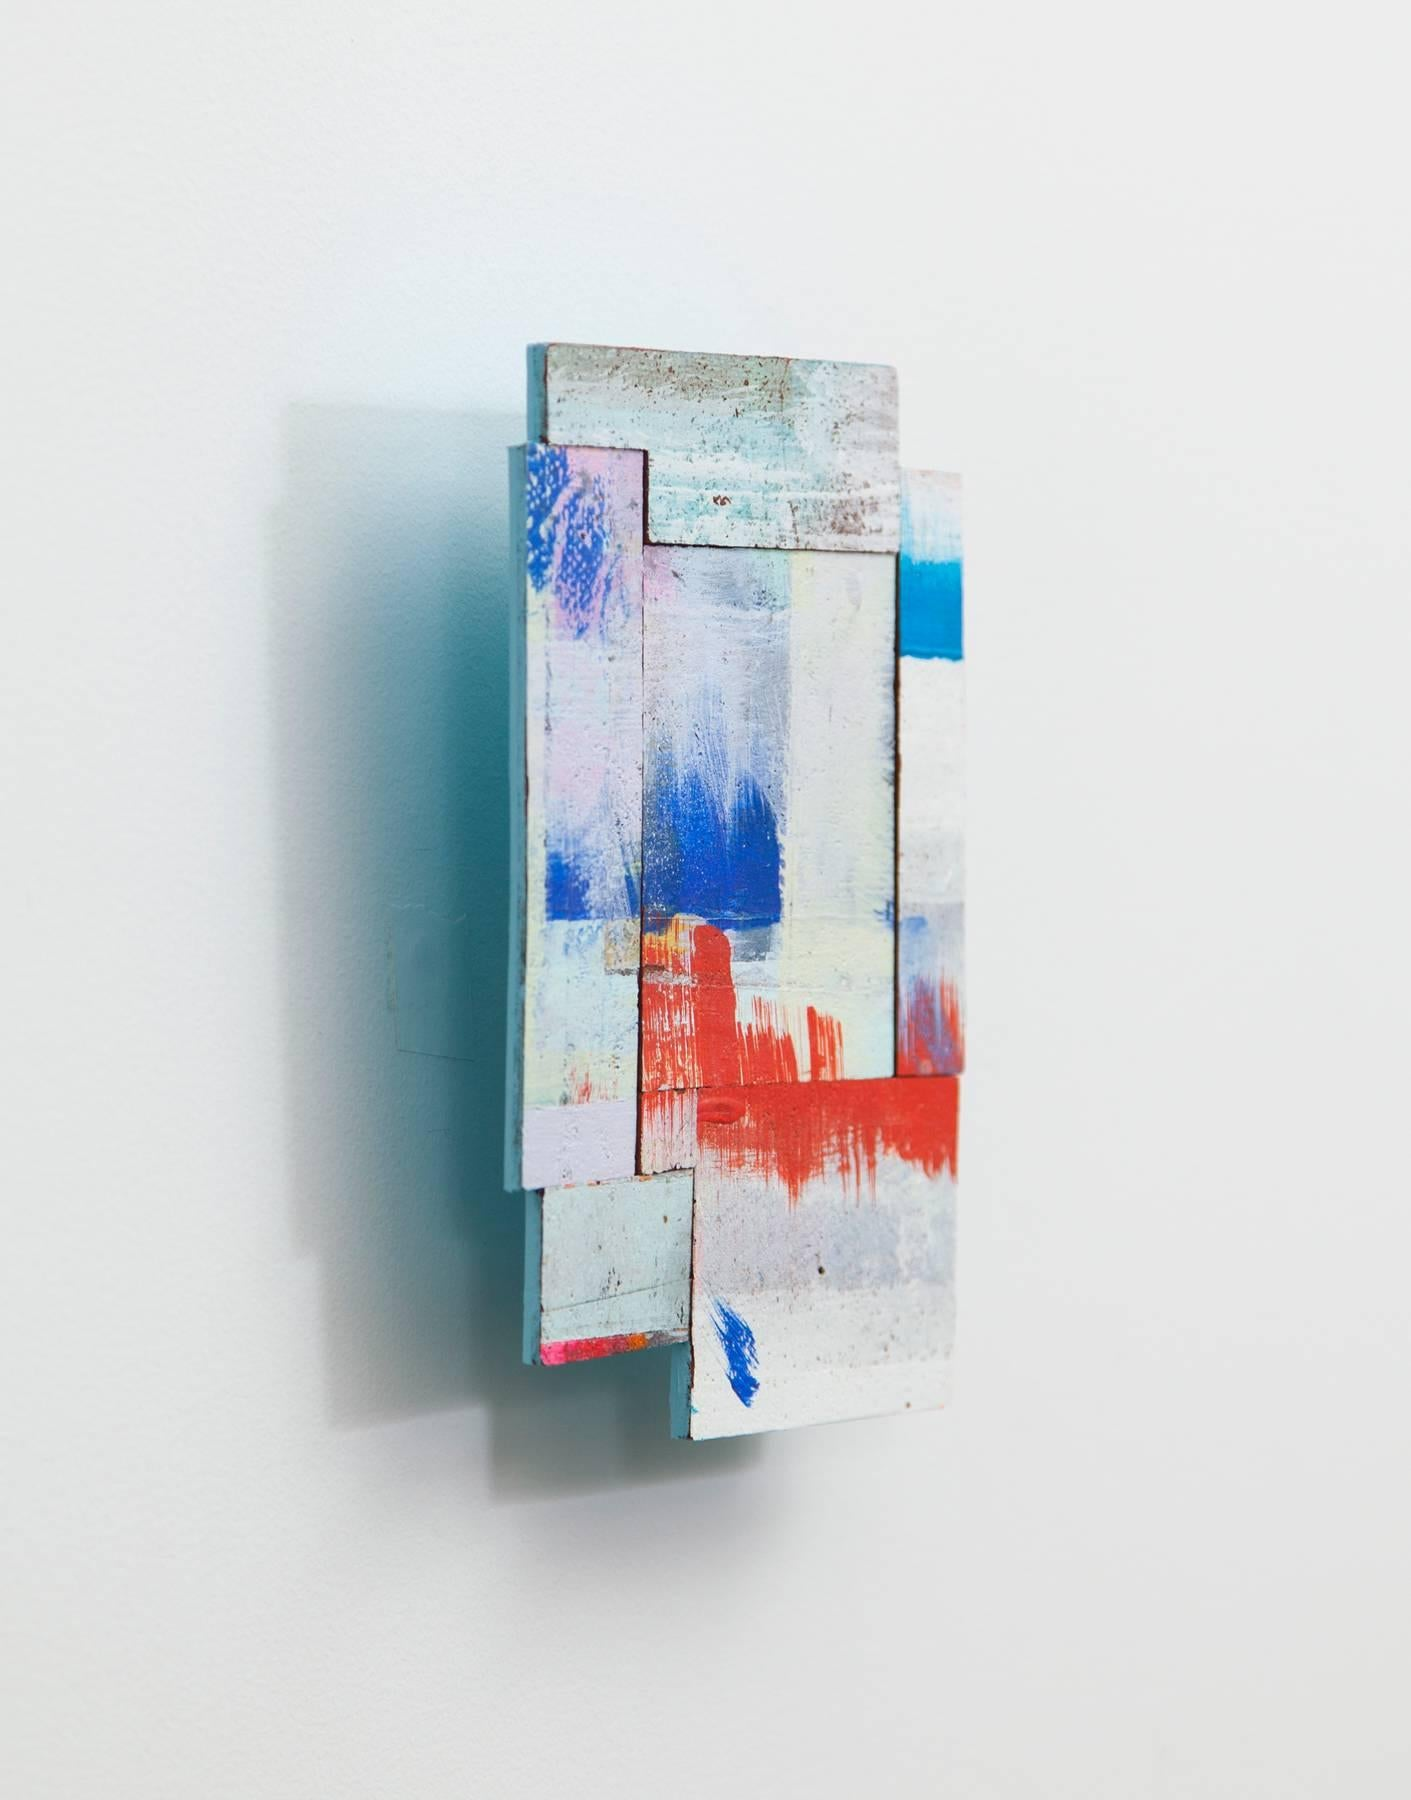 Detritus #4, multicolored acrylic on pressed wood abstract wall sculpture, 2015